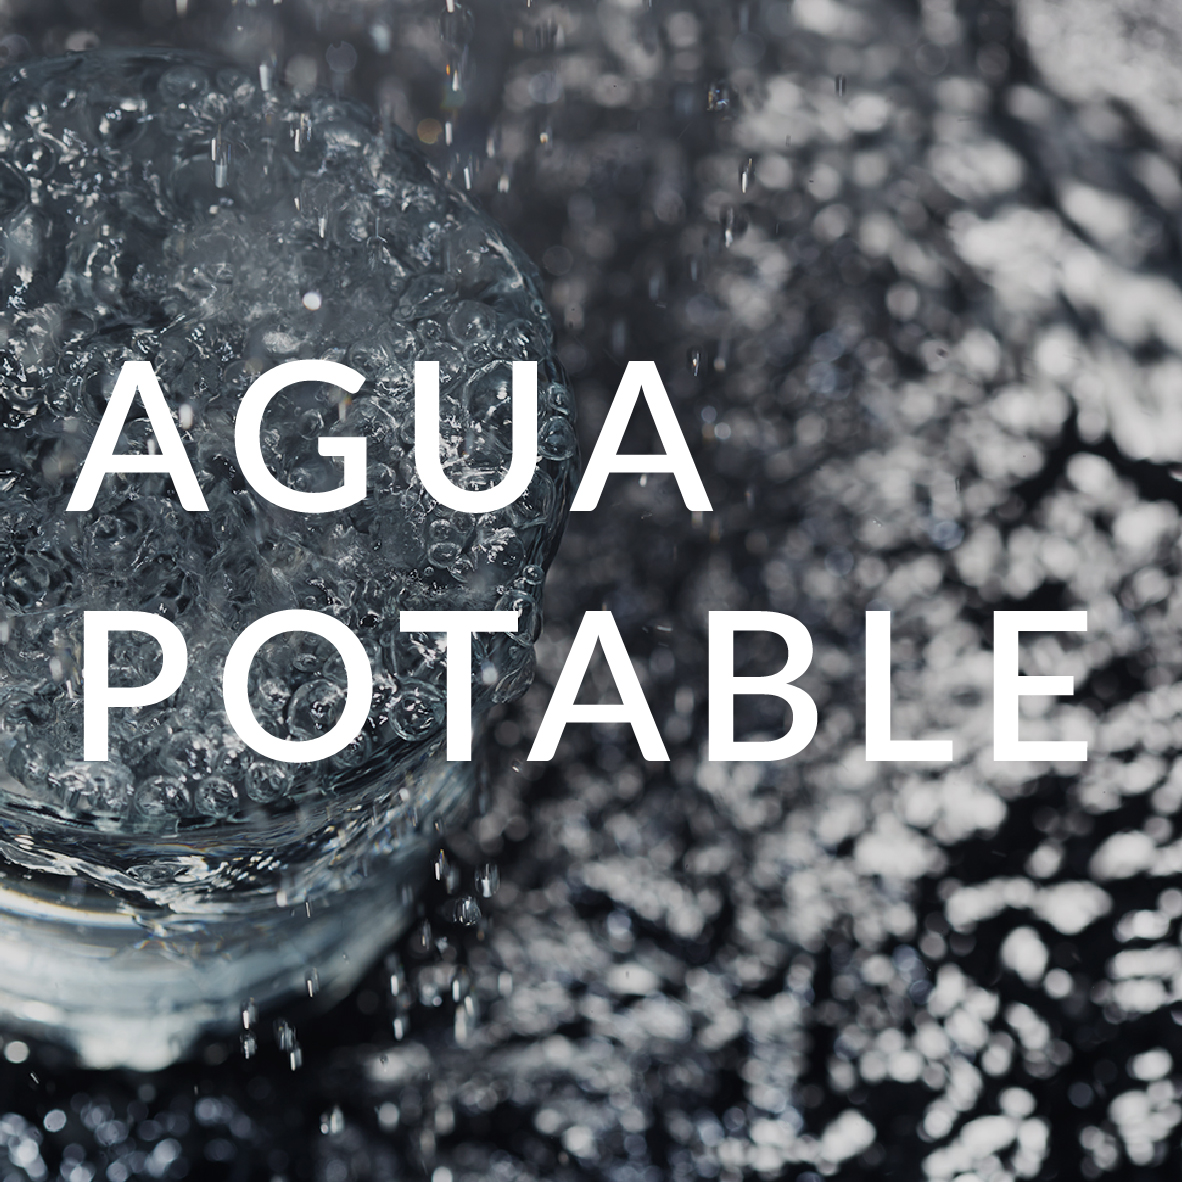 AGUA POTABLE AREMA